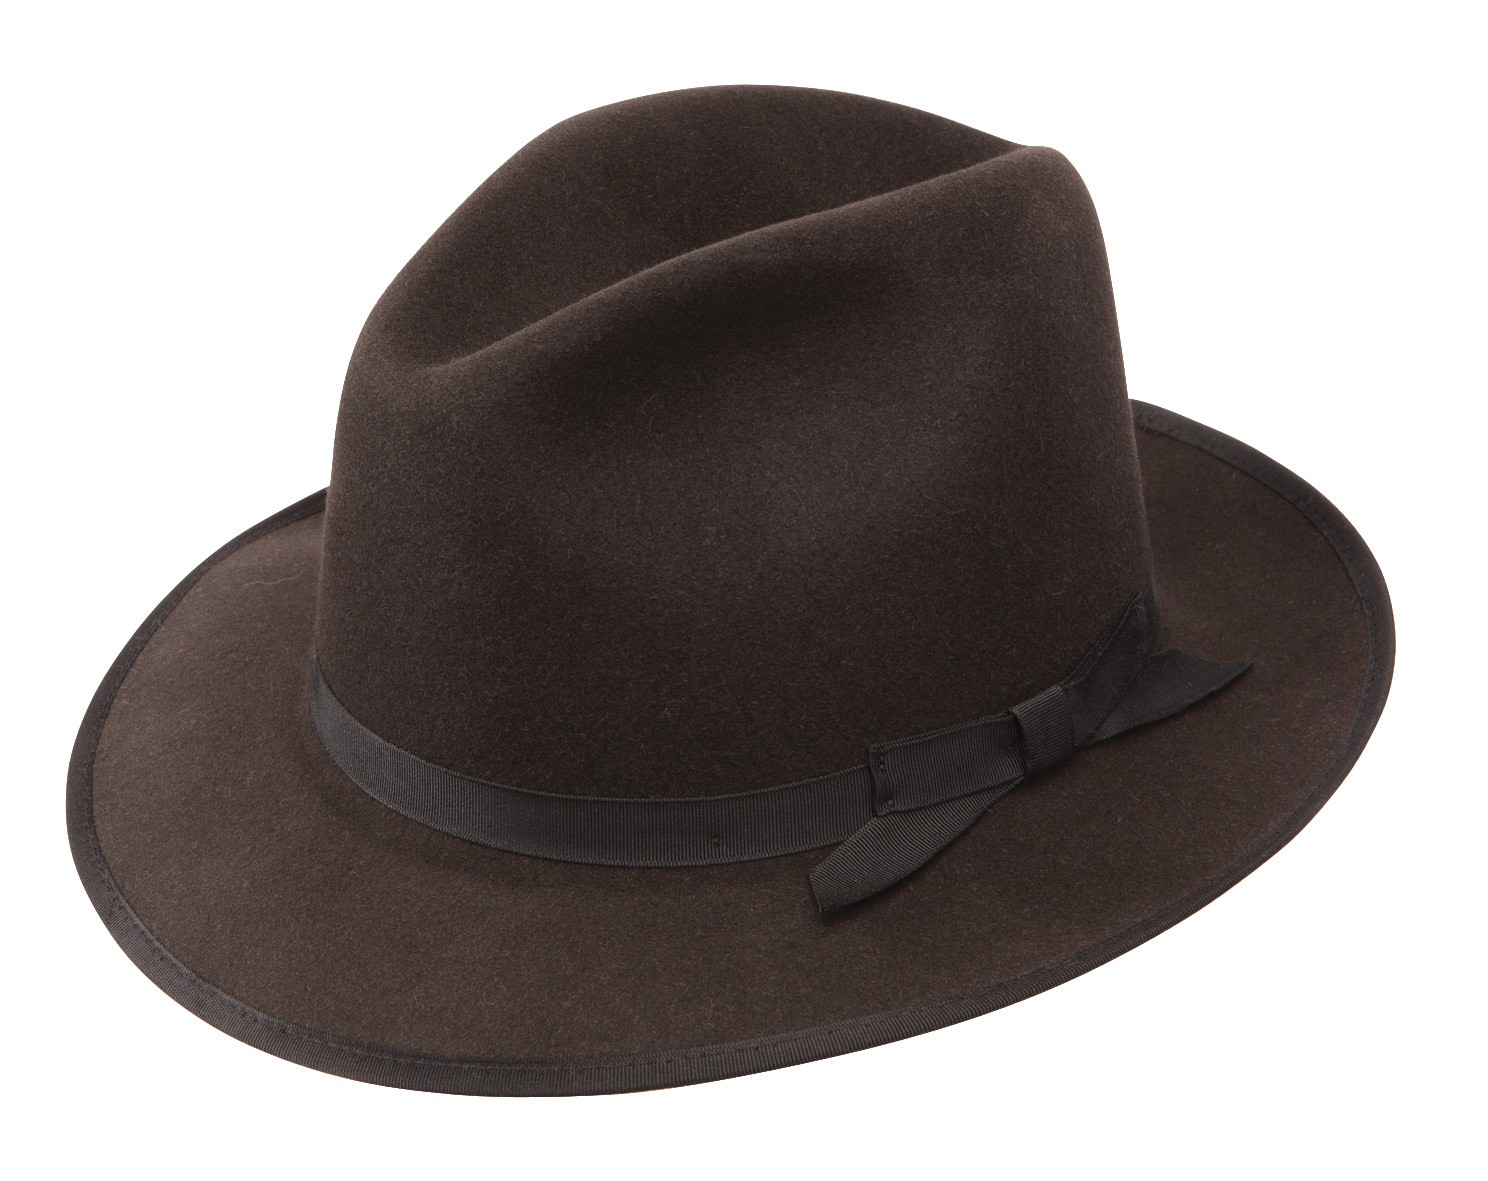 188bfc540 Stetson Madison Fur Felt Fedora